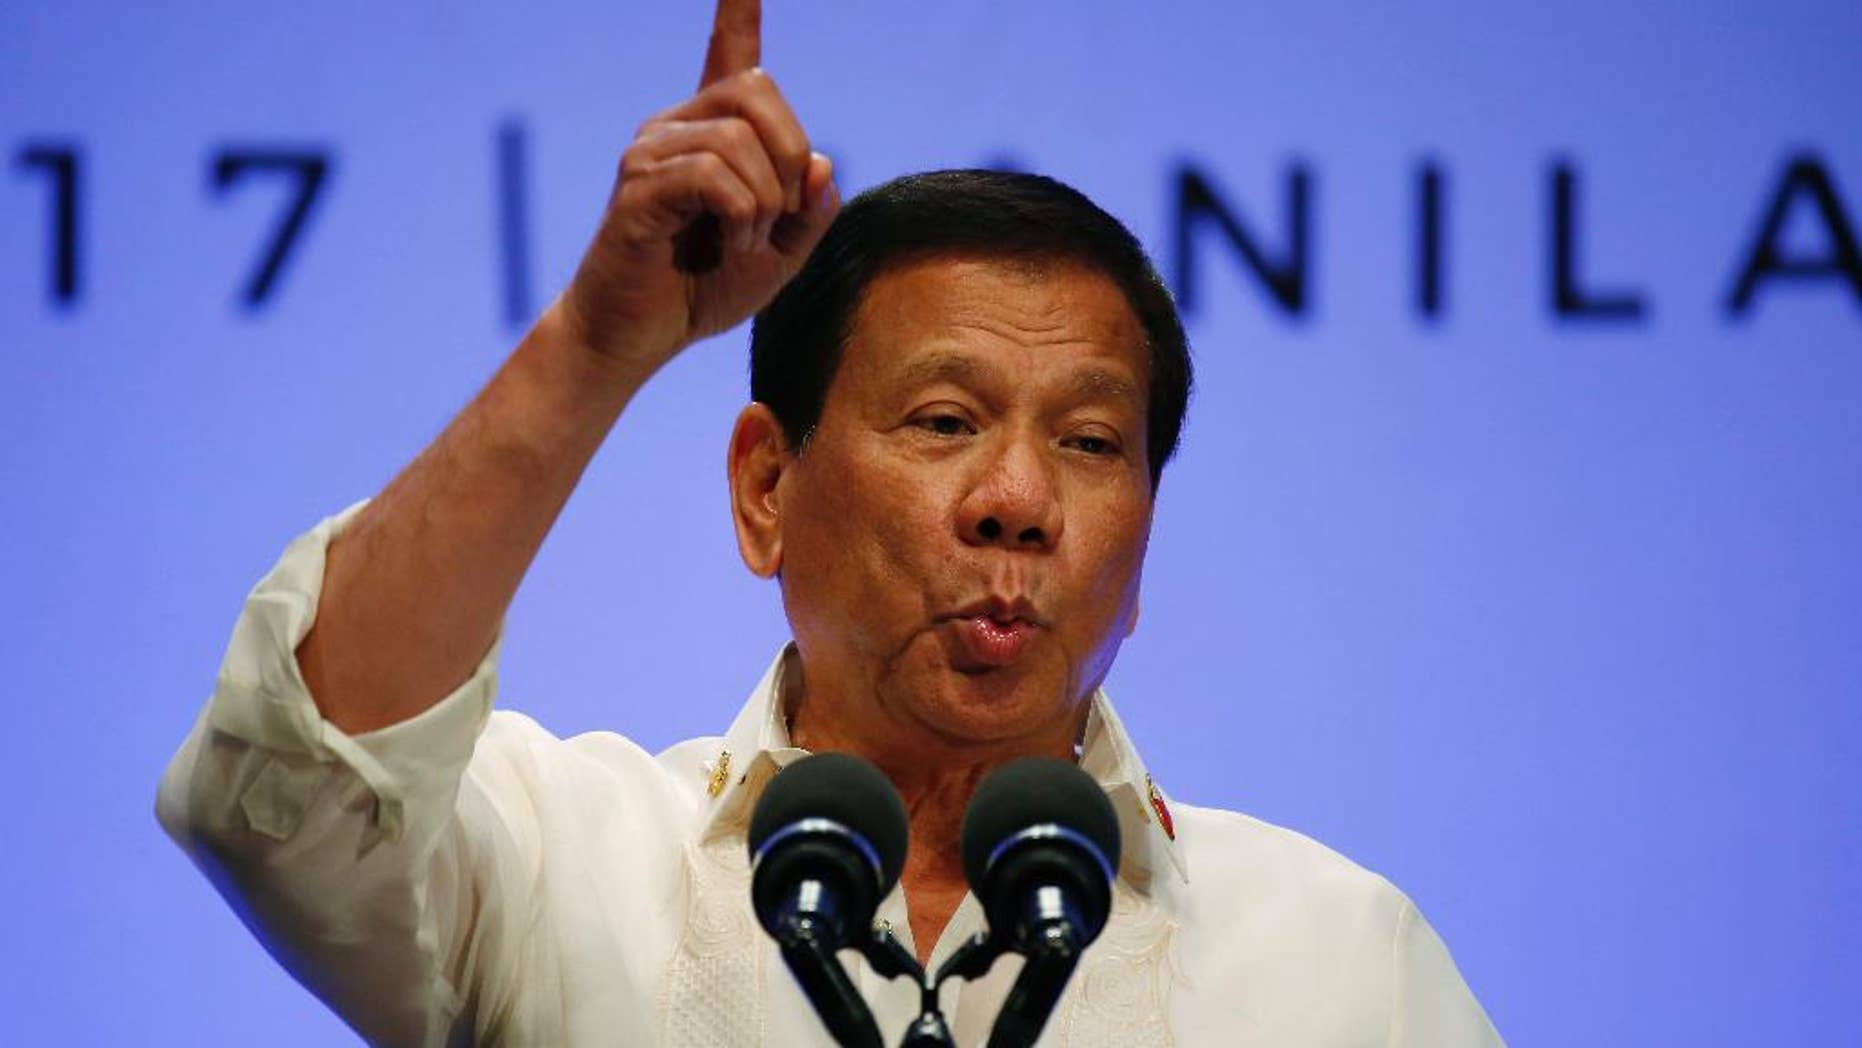 FILE - In this April 29, 2017 file photo, Philippines President Rodrigo Duterte gestures while addressing the media following the conclusion of the 30th ASEAN Leaders' Summit in Manila, Philippines. Philippine lawmakers have killed an impeachment complaint accusing President Rodrigo Duterte of crimes against humanity for the thousands of people who have died in his anti-drug crackdown. The Justice Committee of the House of Representatives, which is dominated by Duterte allies, declared Monday, May 15 during the first hearing on the matter that there was insufficient substance to proceed. (AP Photo/Bullit Marquez, File)